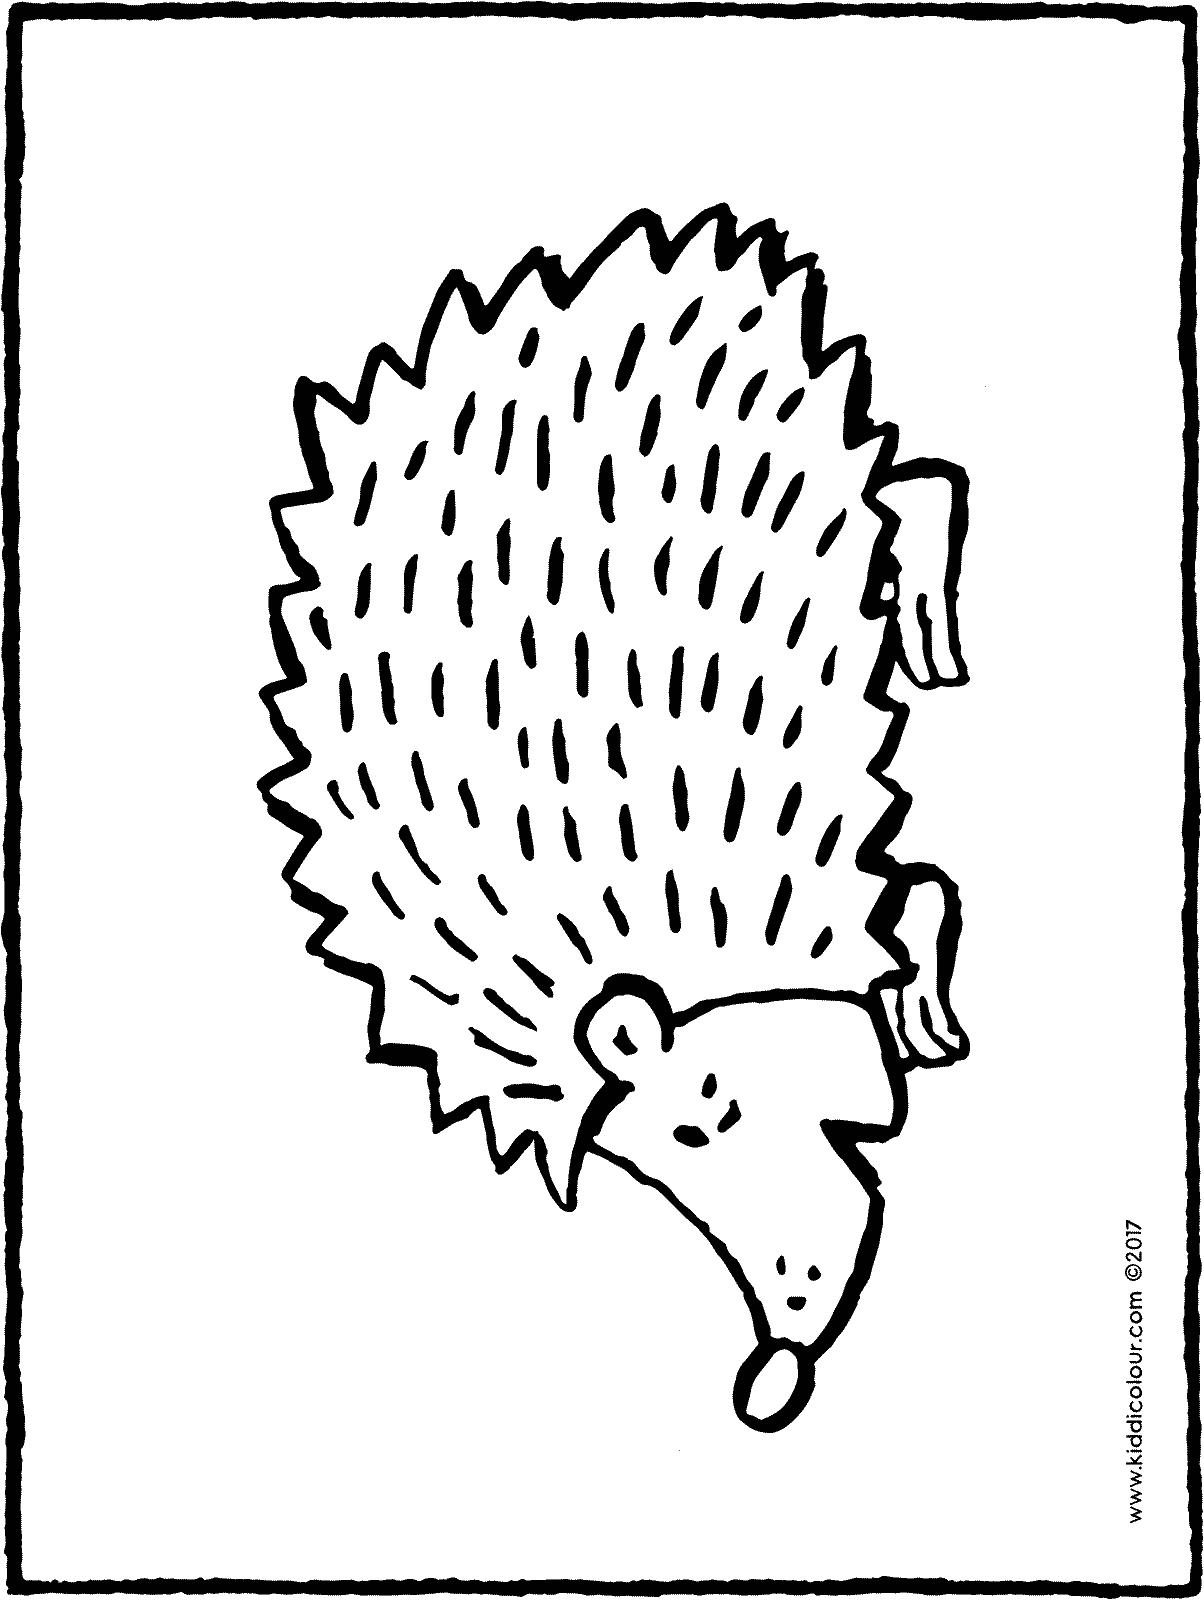 hedgehog colouring page page drawing picture 01V